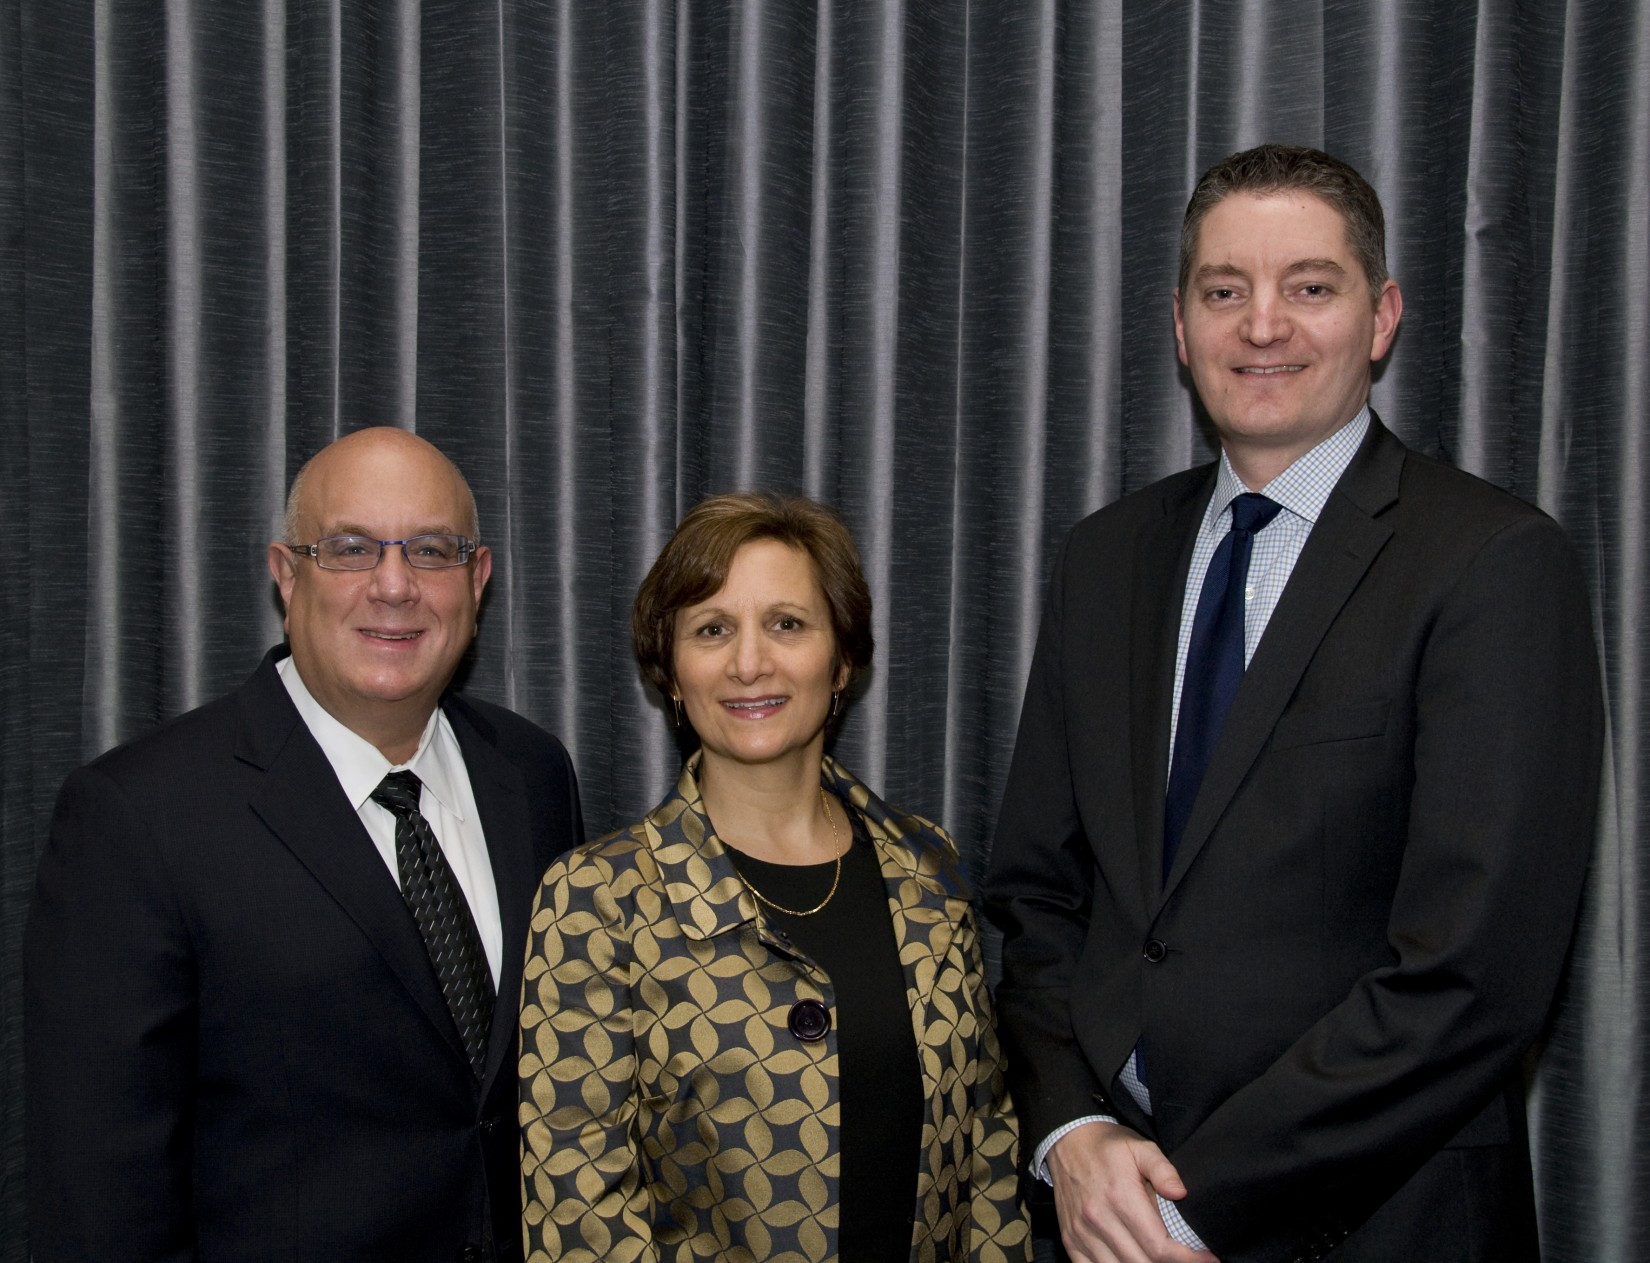 The Hon. Michael H. Simon, U.S. Rep. Suzanne Bonamici, and Alumni Board Vice President Dan Eller '04.